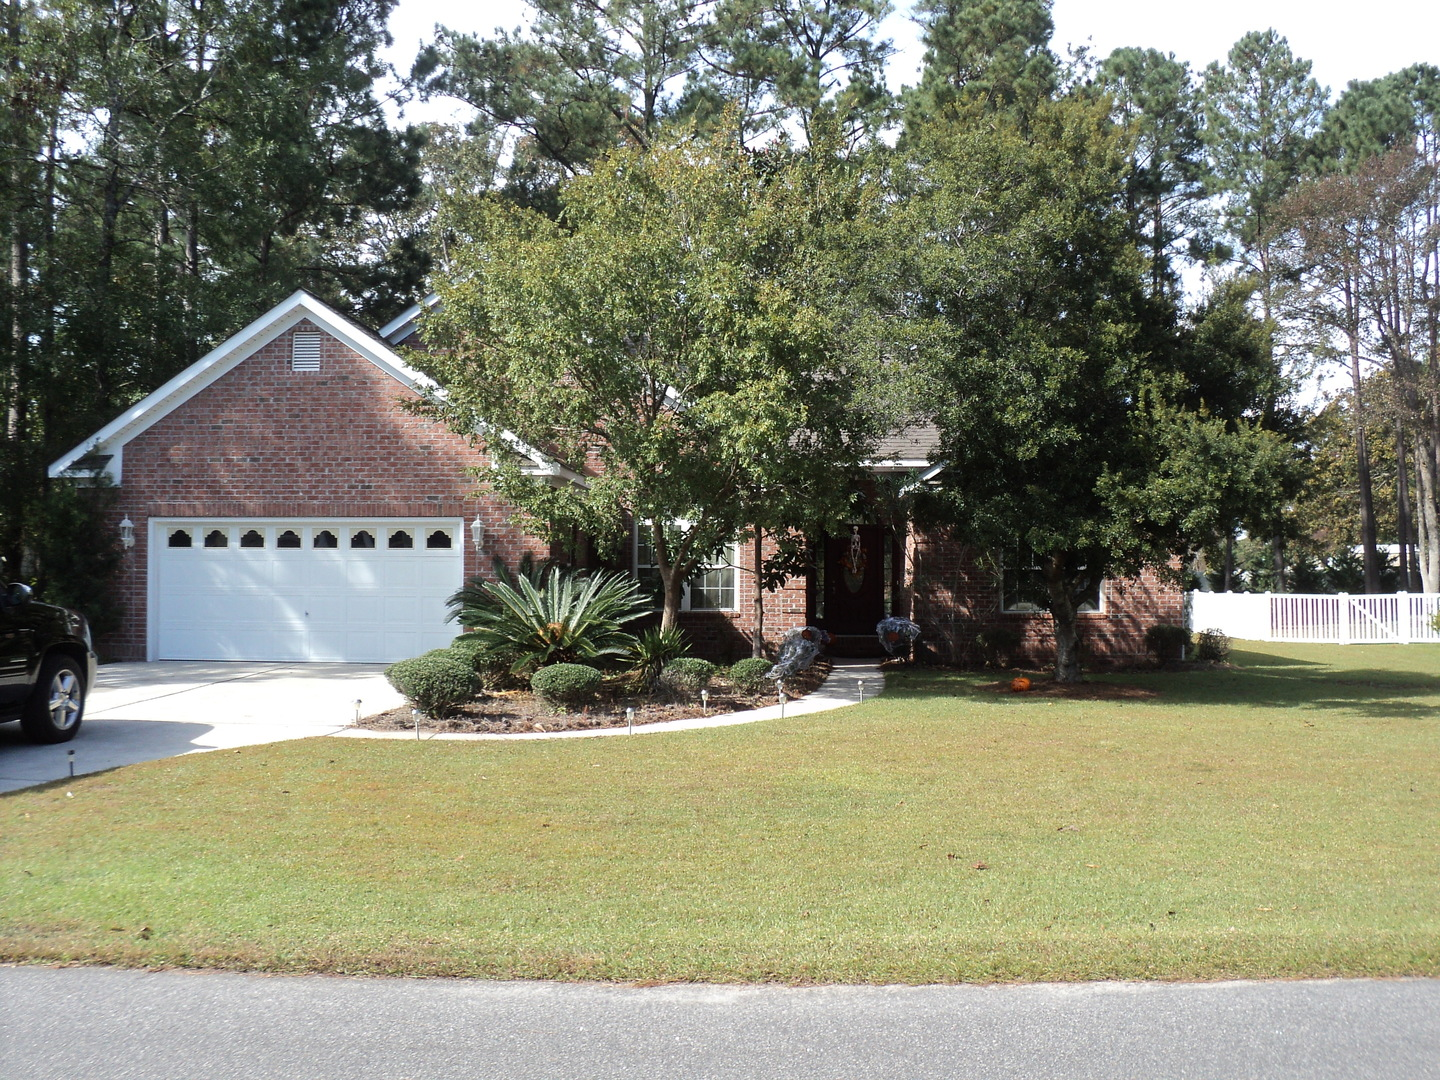 1392 mcmaster drive, myrtle beach, sc 29577